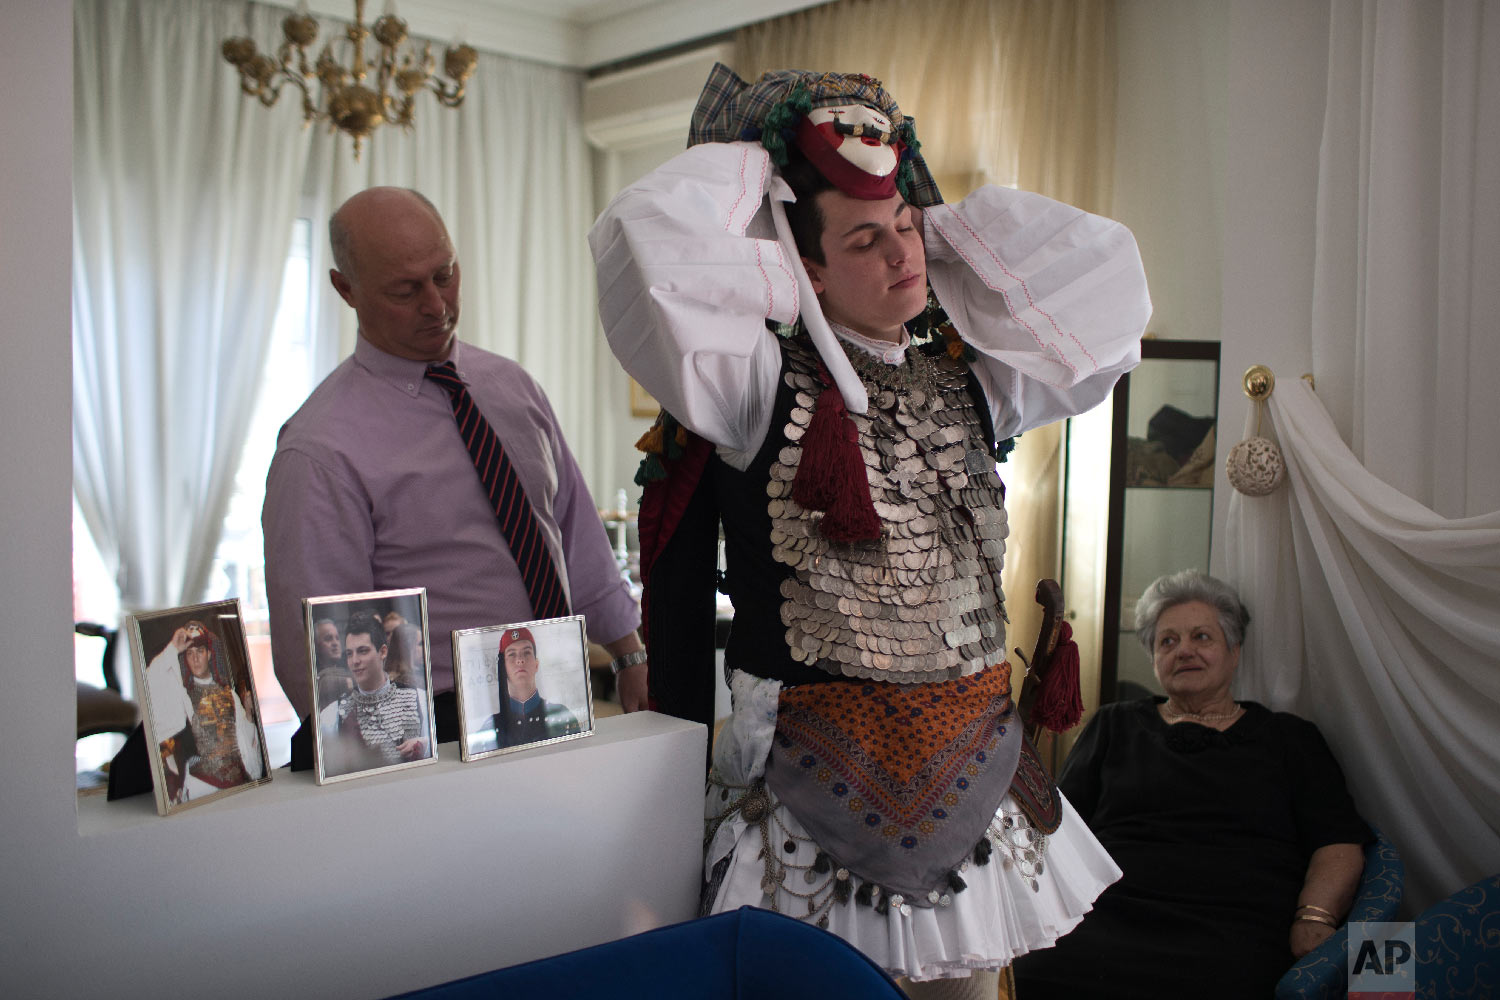 A dancer gets dressed at his home as he prepares to compete in the Boules and Genitsaroi carnival parade in the town of Naousa, northern Greece on March 10, 2019. (AP Photo/Petros Giannakouris)